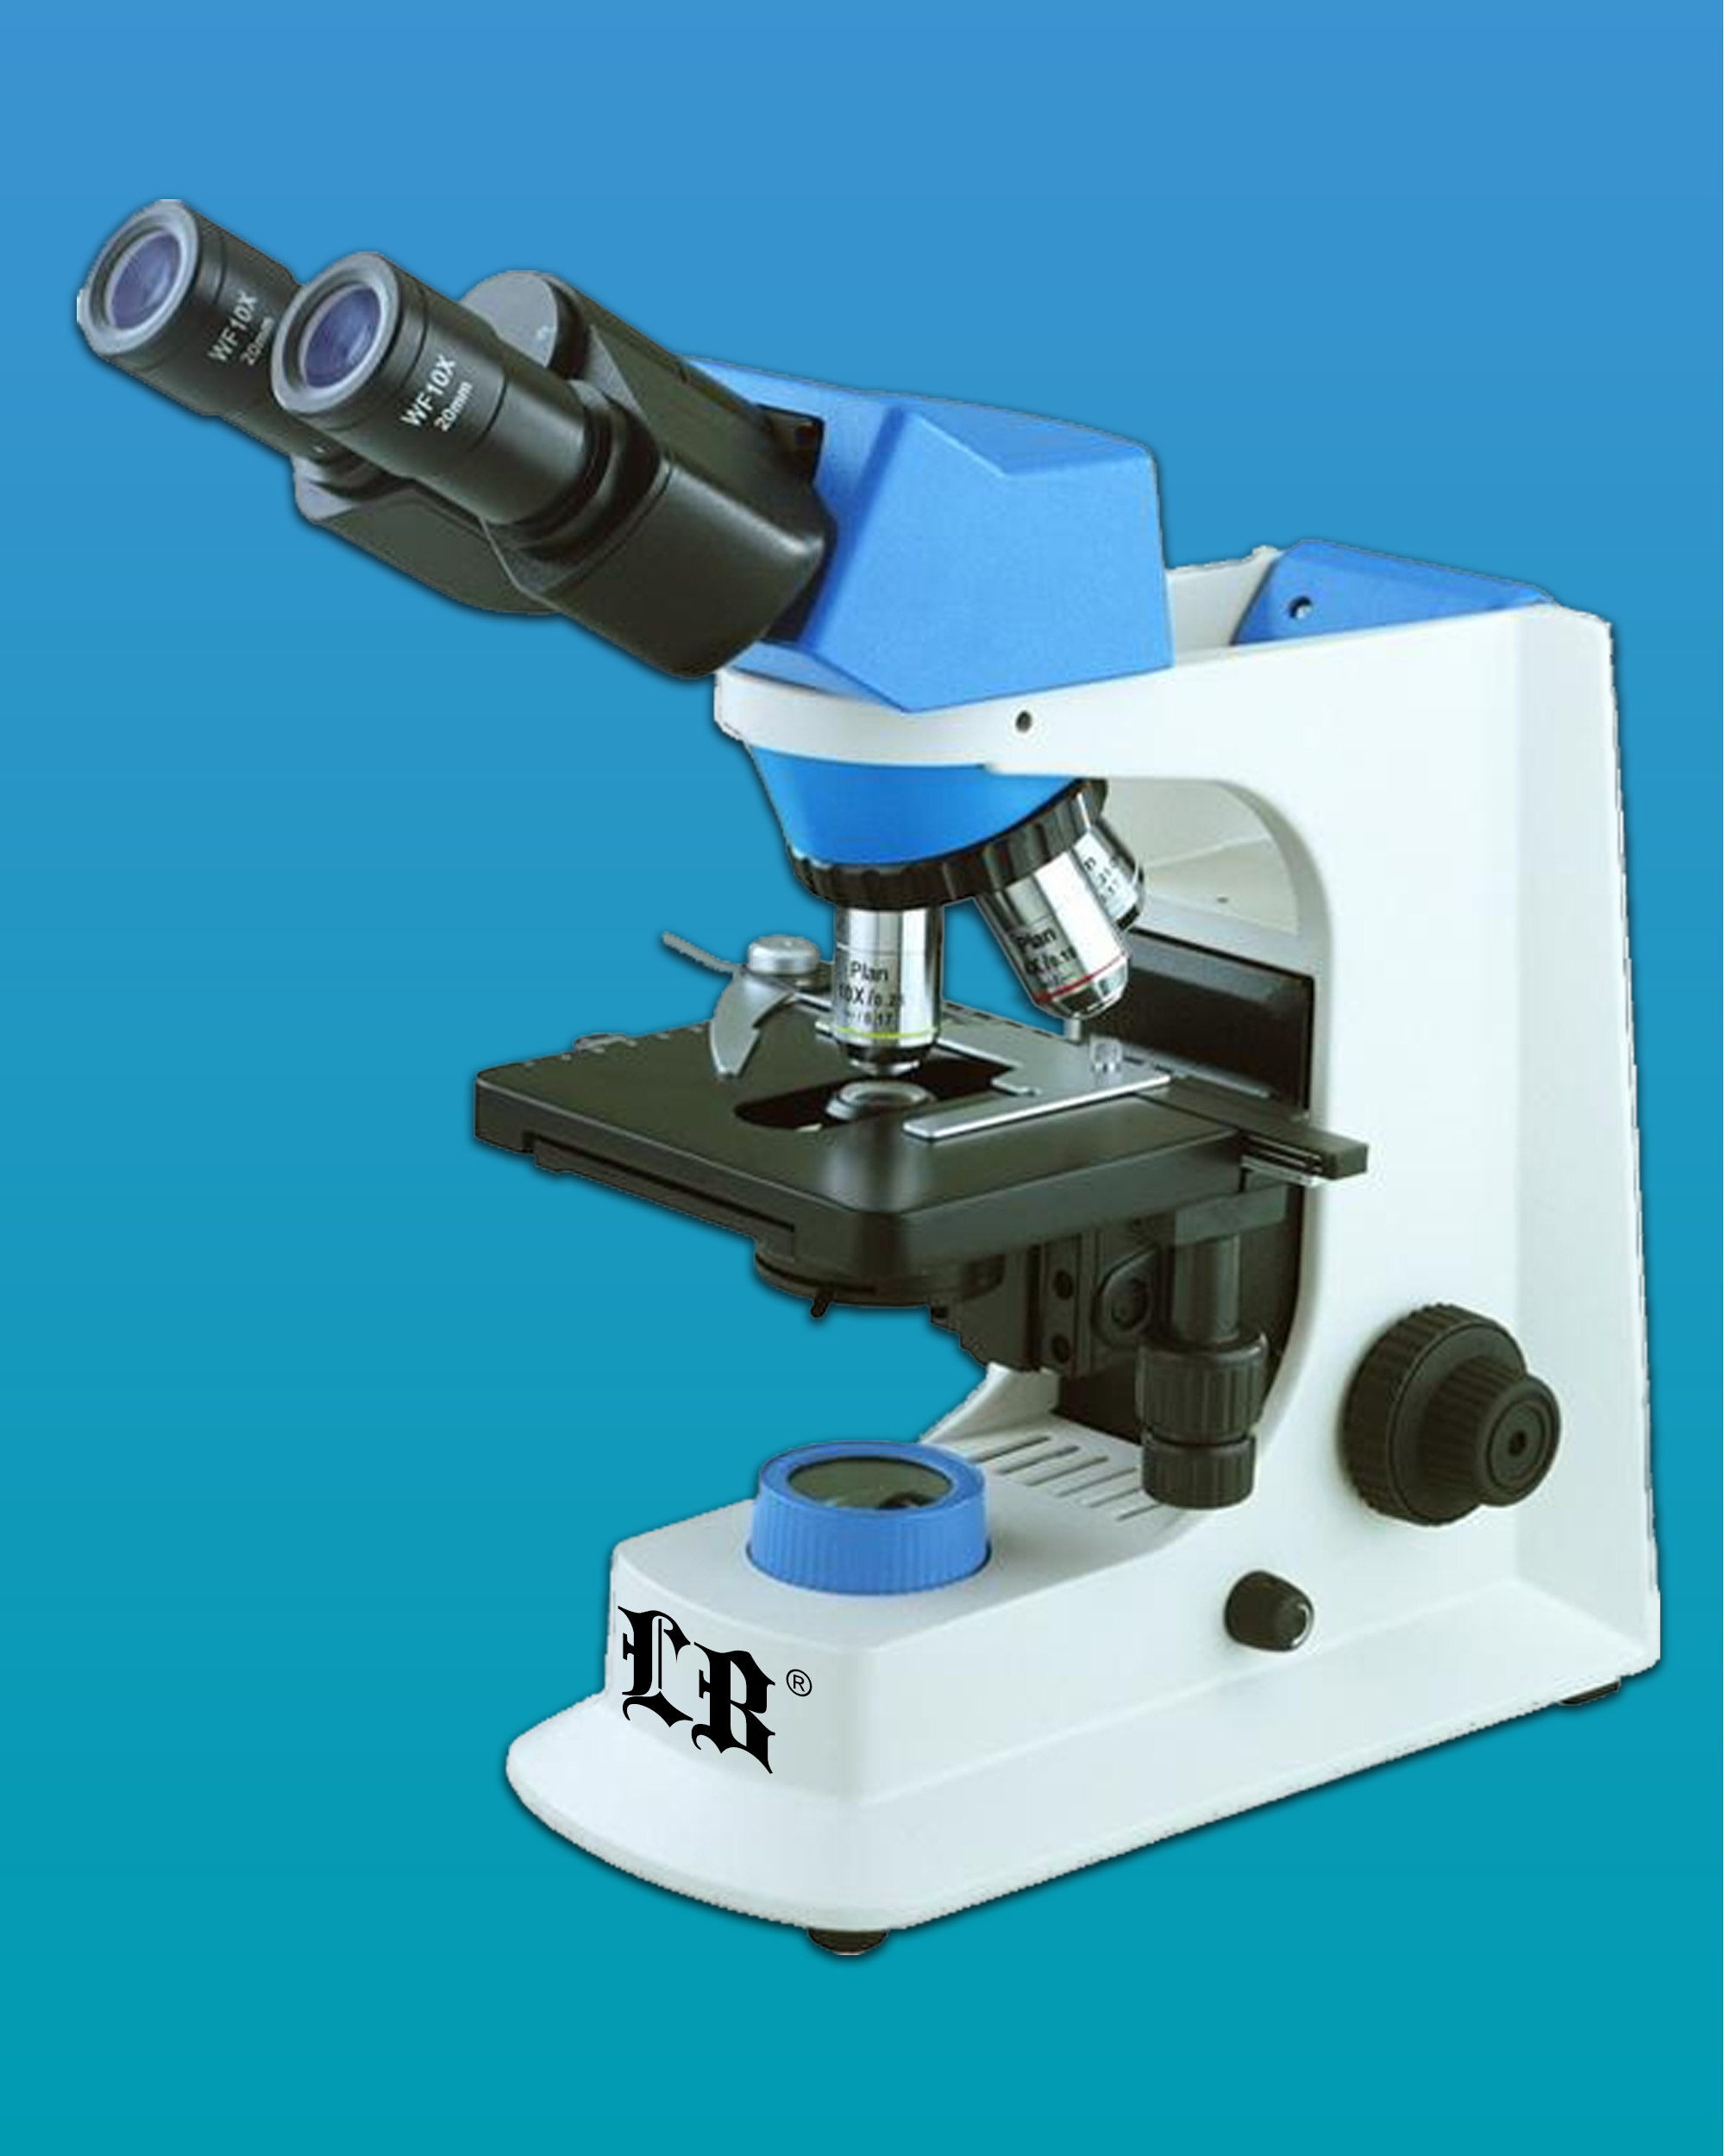 [LB-207] Biological Interference Microscope w/ Wide Field, & Infinity E-Plan Objectives